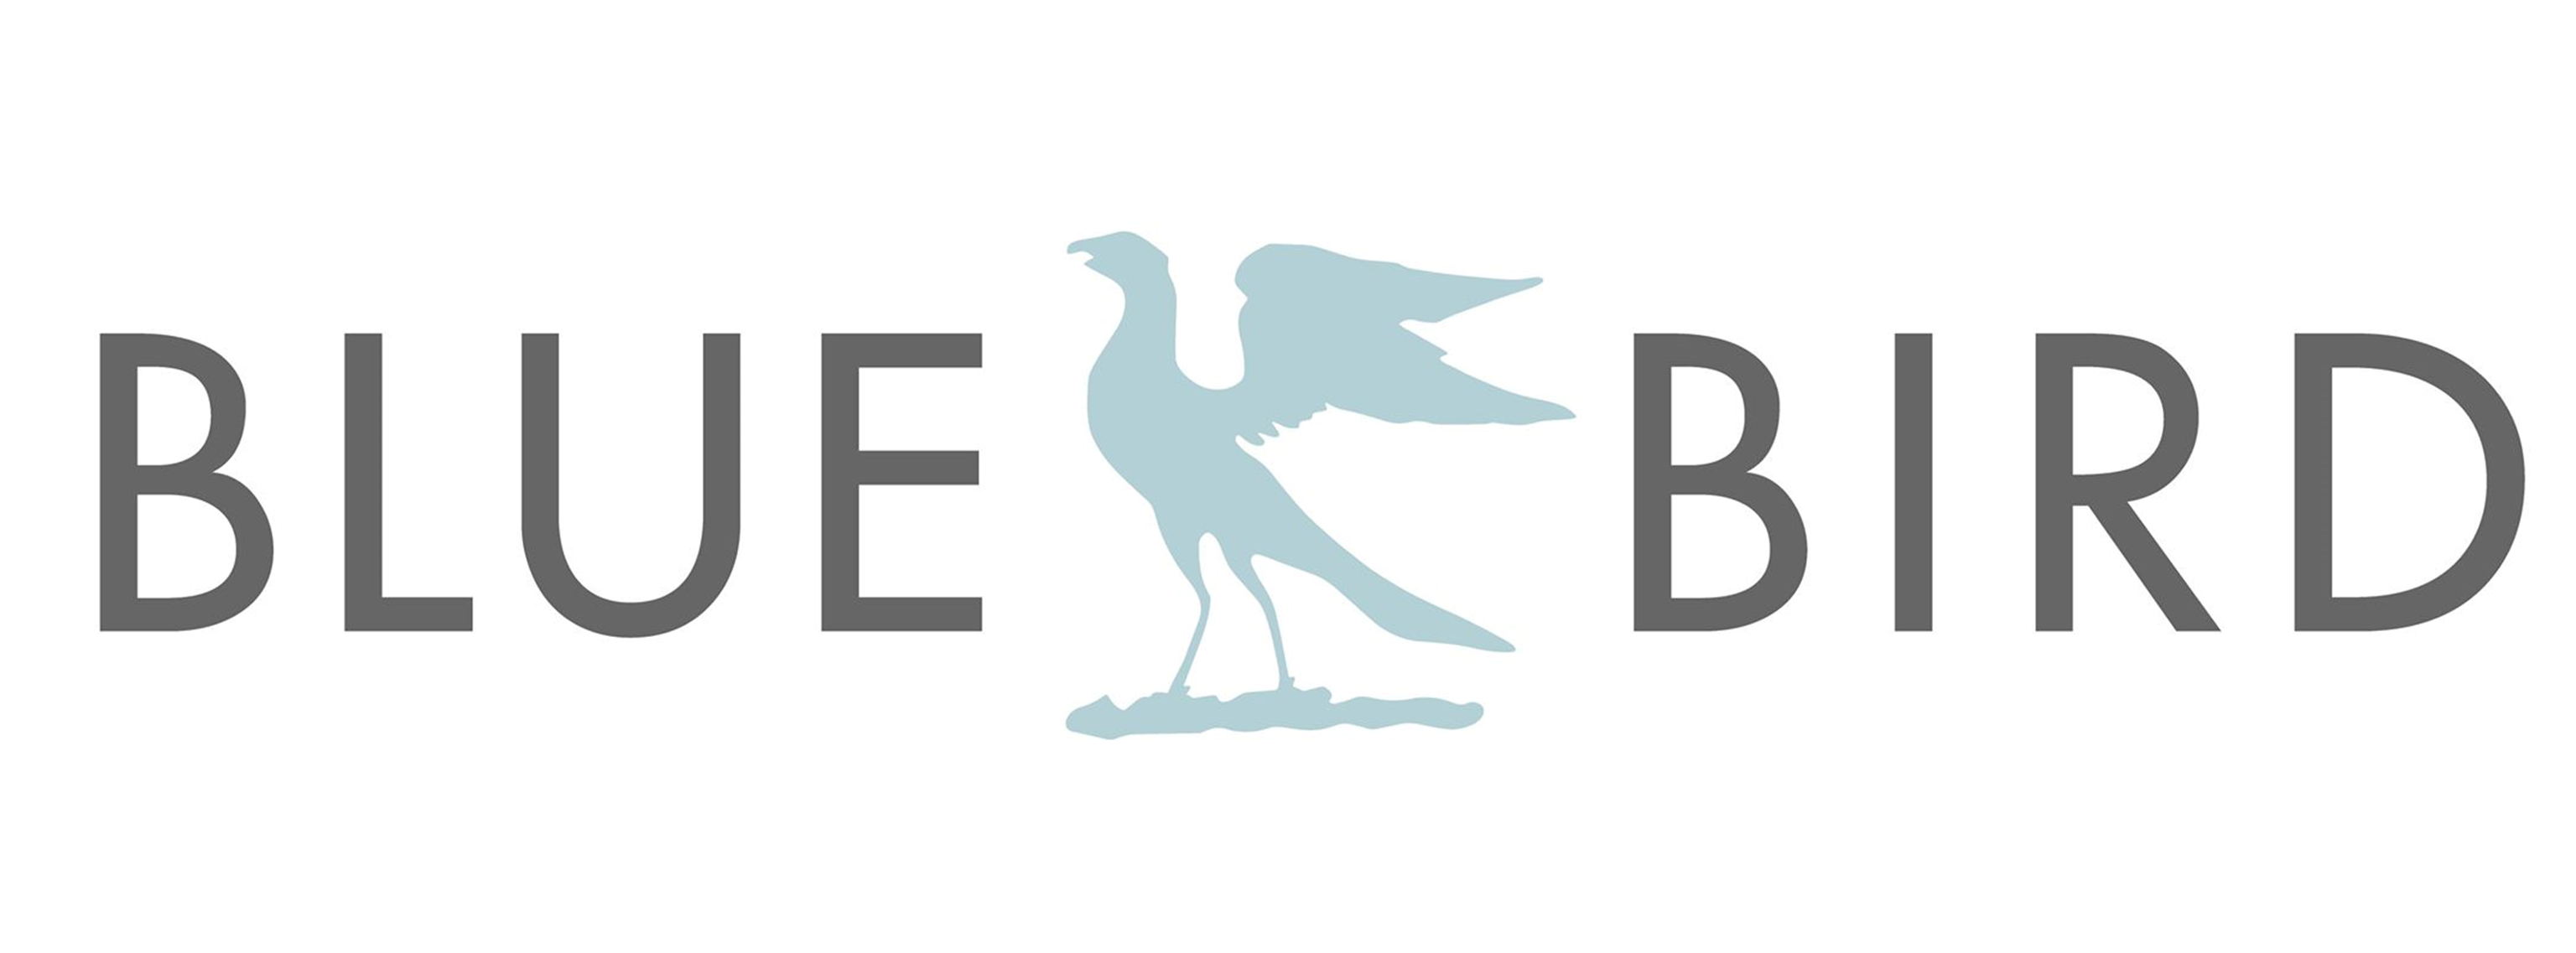 BBTeam cover photo banner blue bird